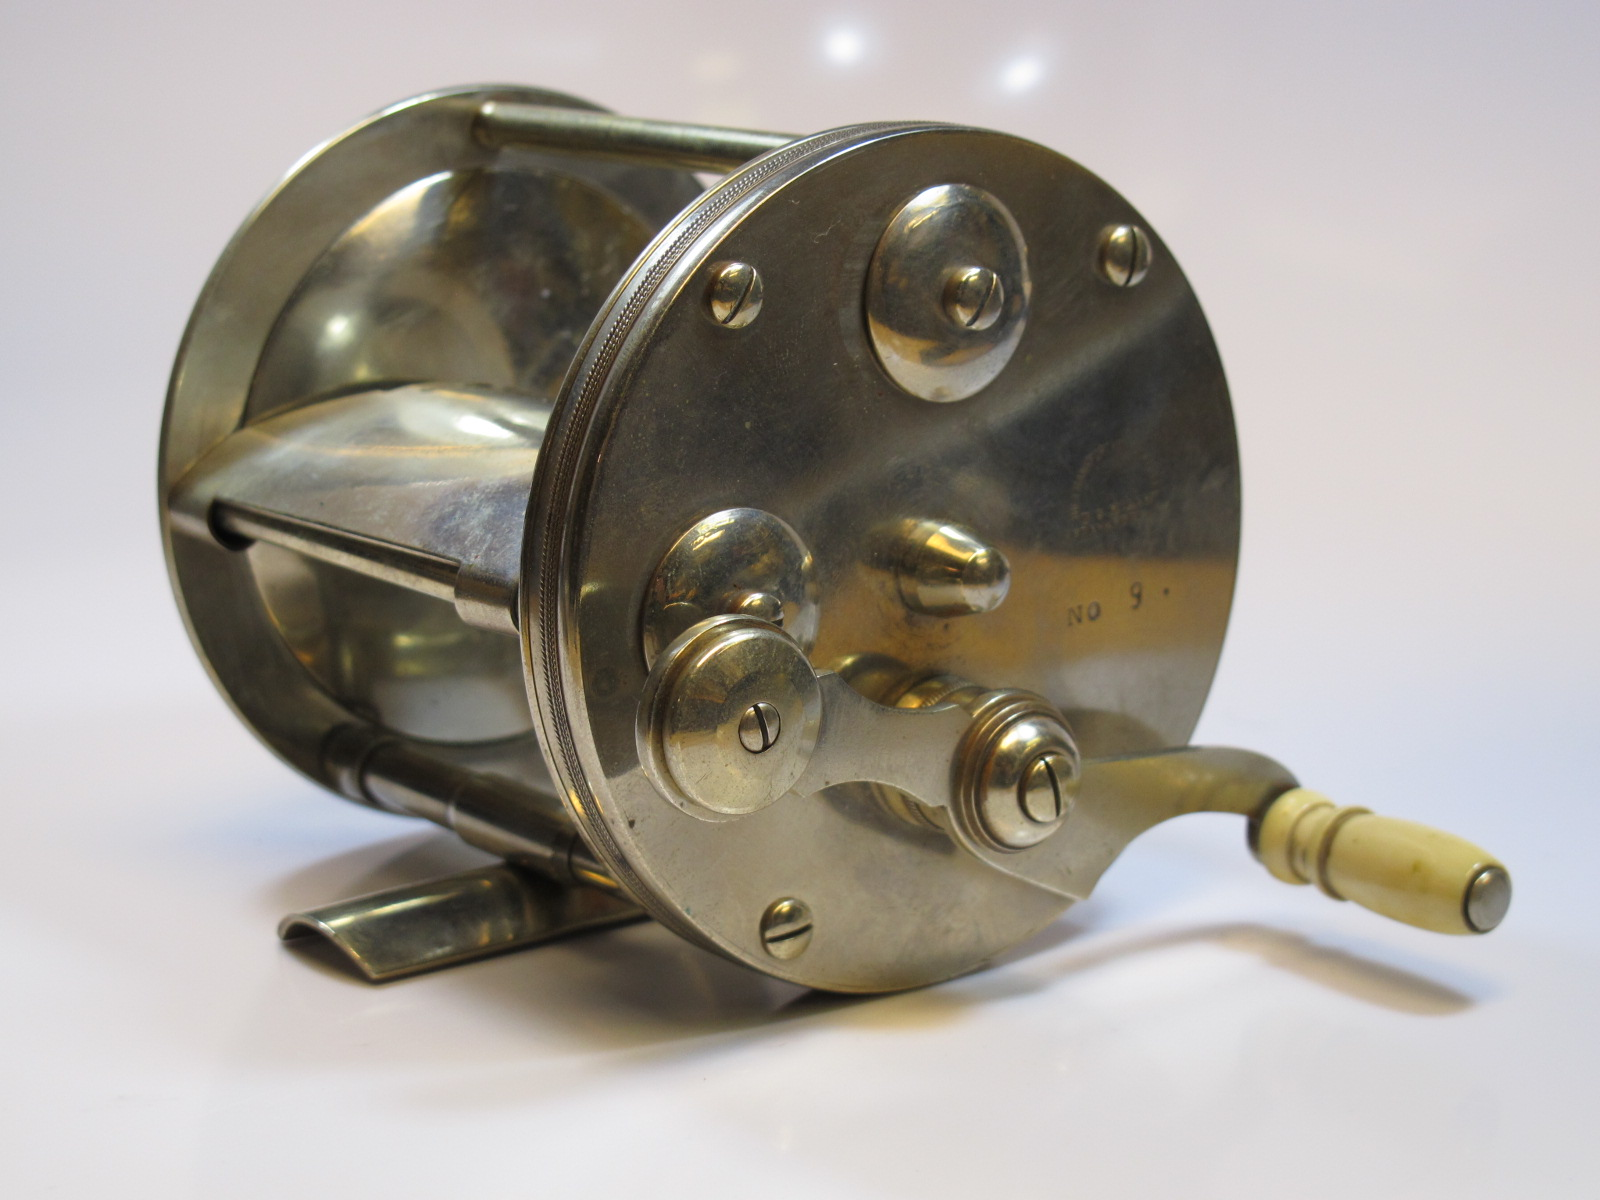 Antique fishing reels for sale autos post for Fishing tackle sale